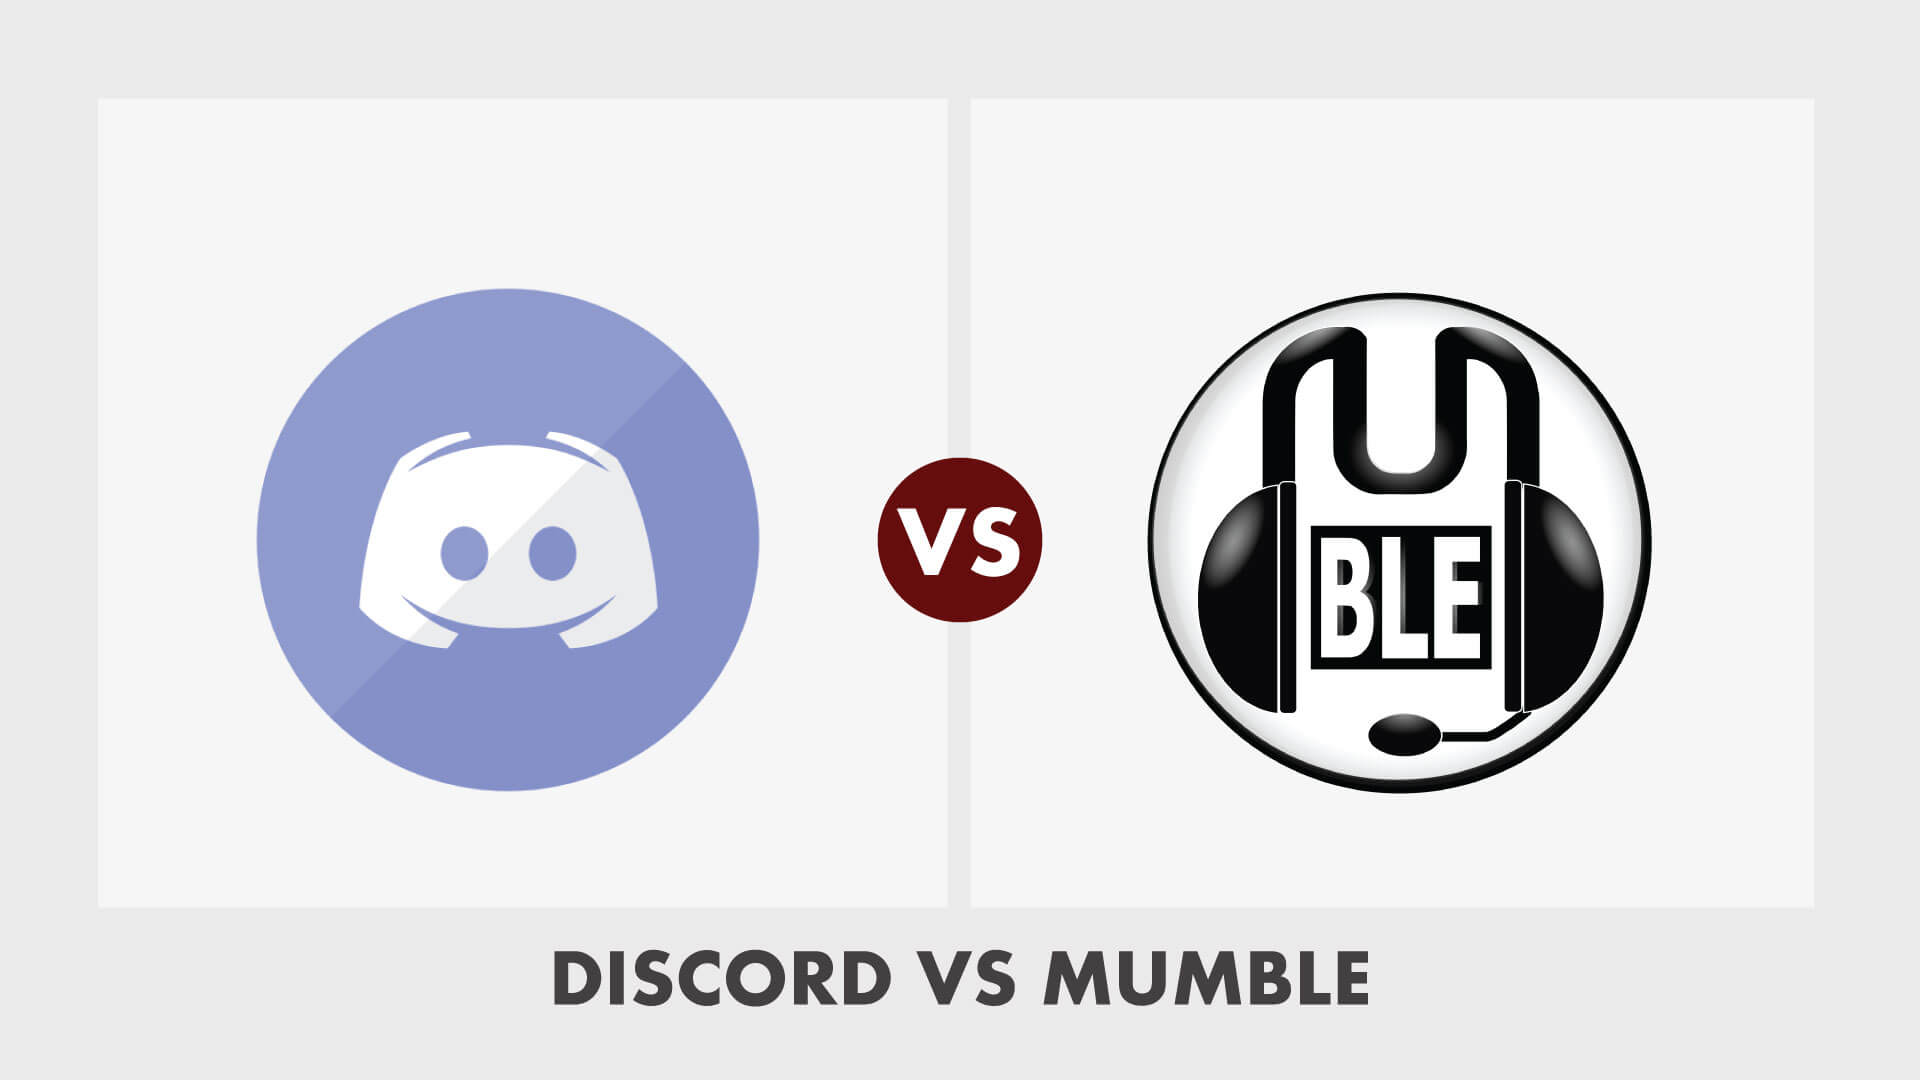 Discord vs Mumble - Which One is Better?